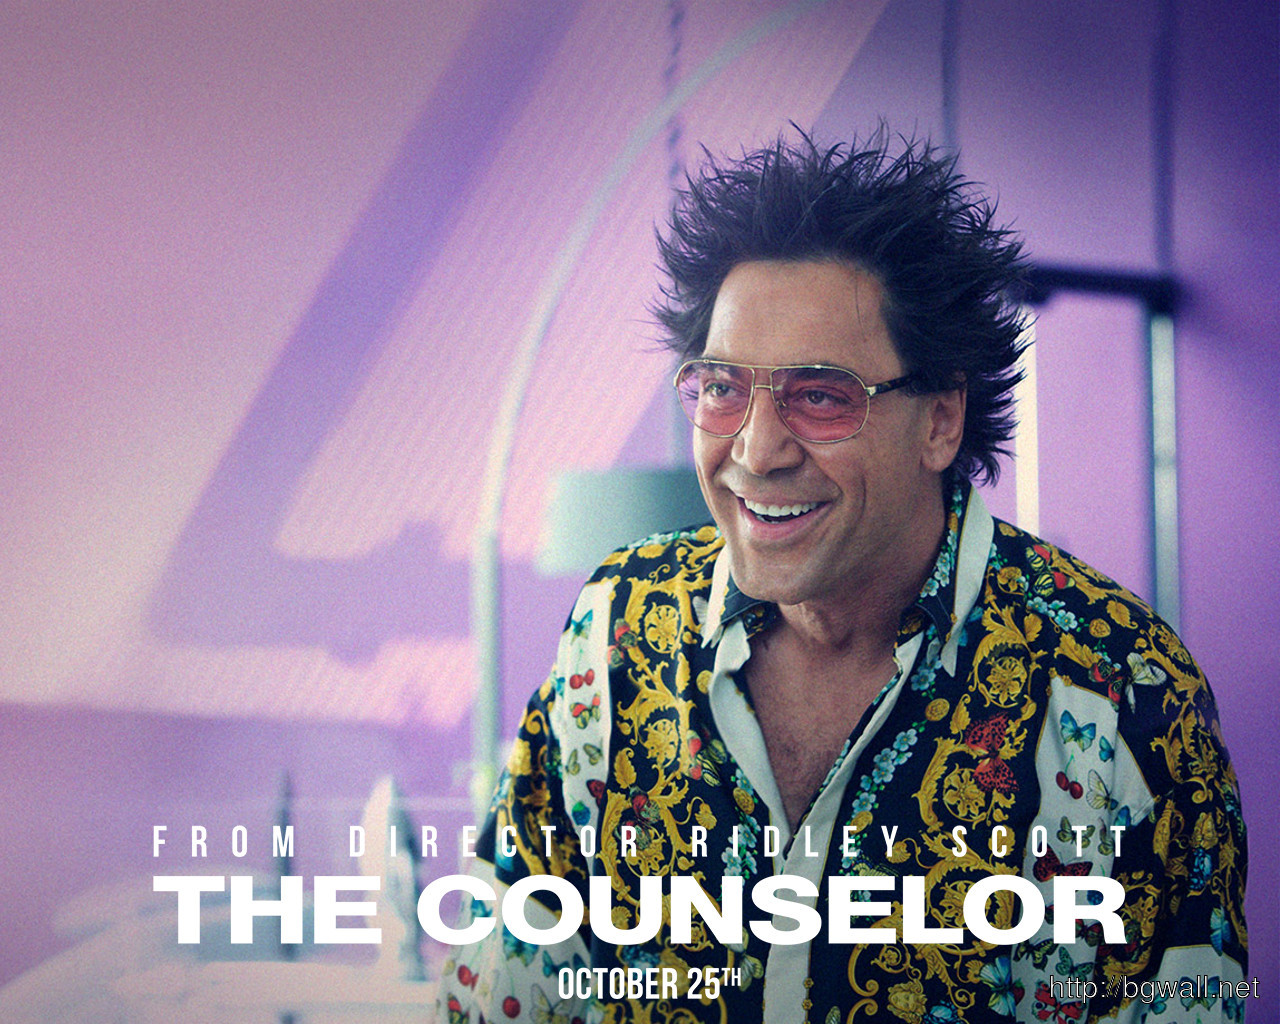 Javier Bardem In The Counselor Wallpaper Full Size